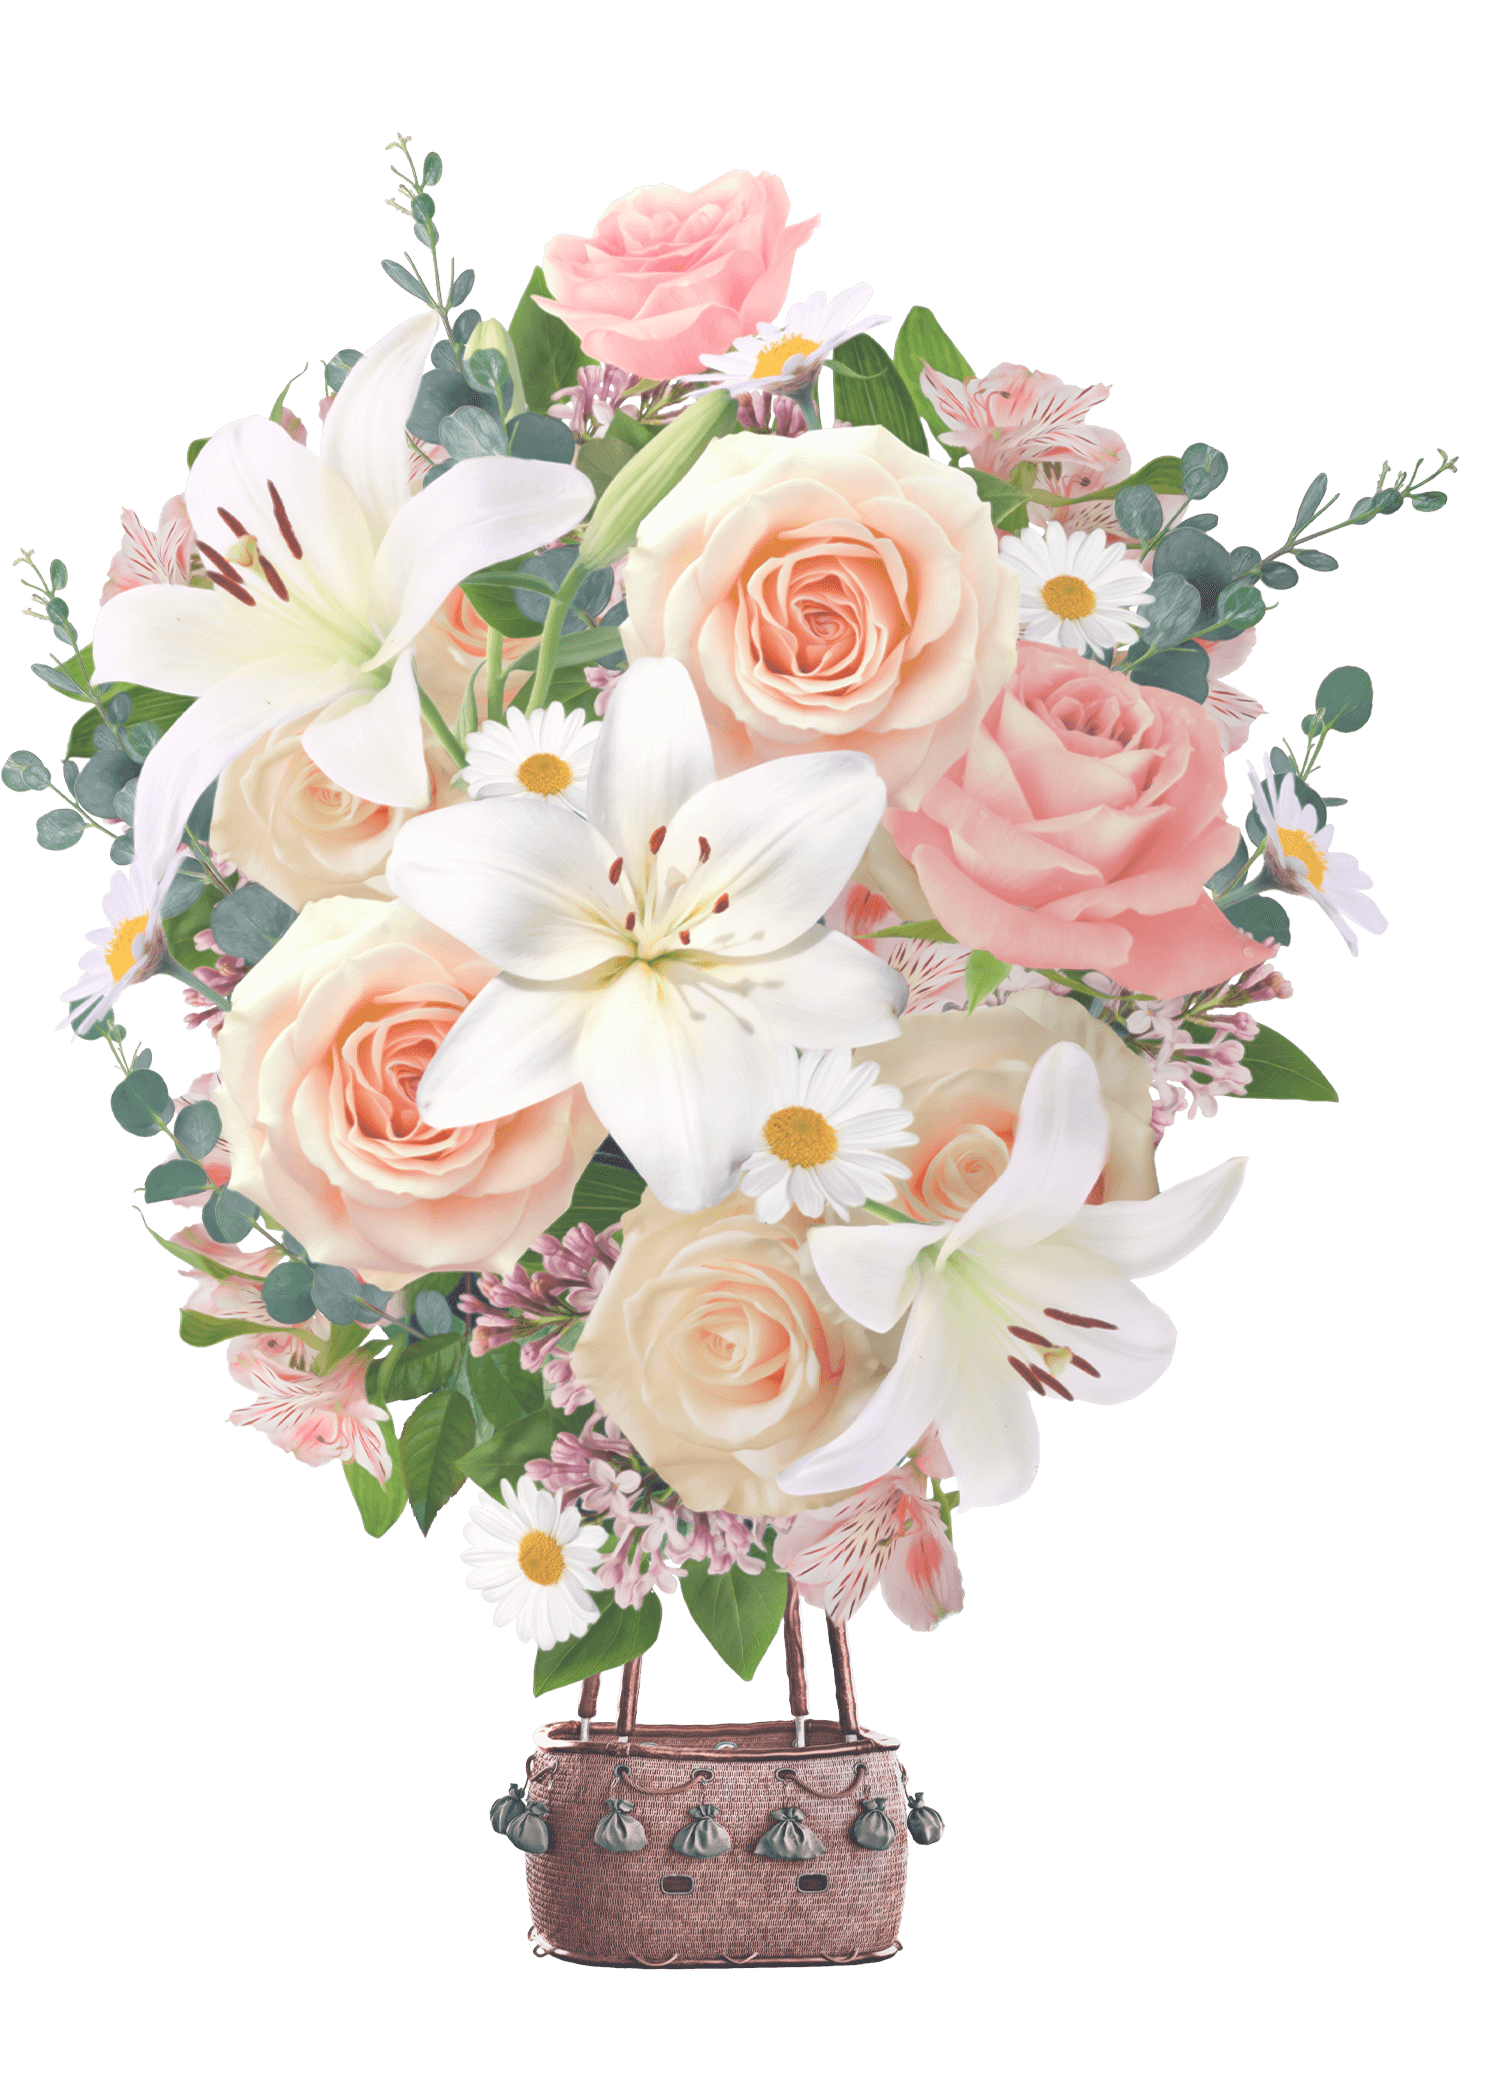 A hot air balloon made up of a colorful floral arrangement consisting of pink roses, white lilies and daisies.